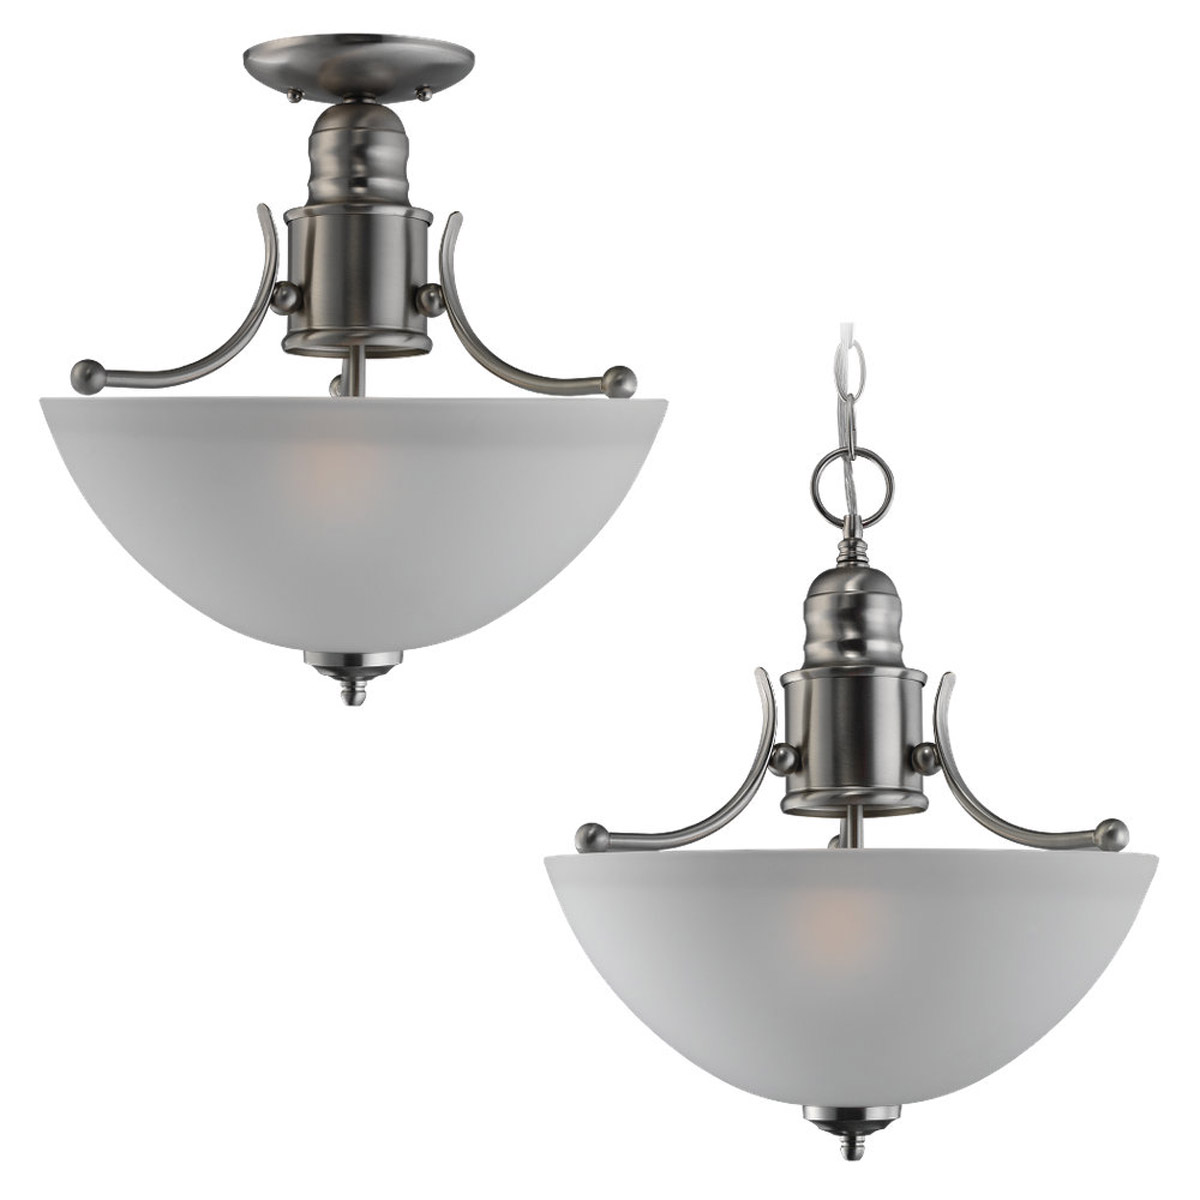 Sea Gull Lighting Linwood 2 Light Flush Mount in Brushed Nickel 77225-962